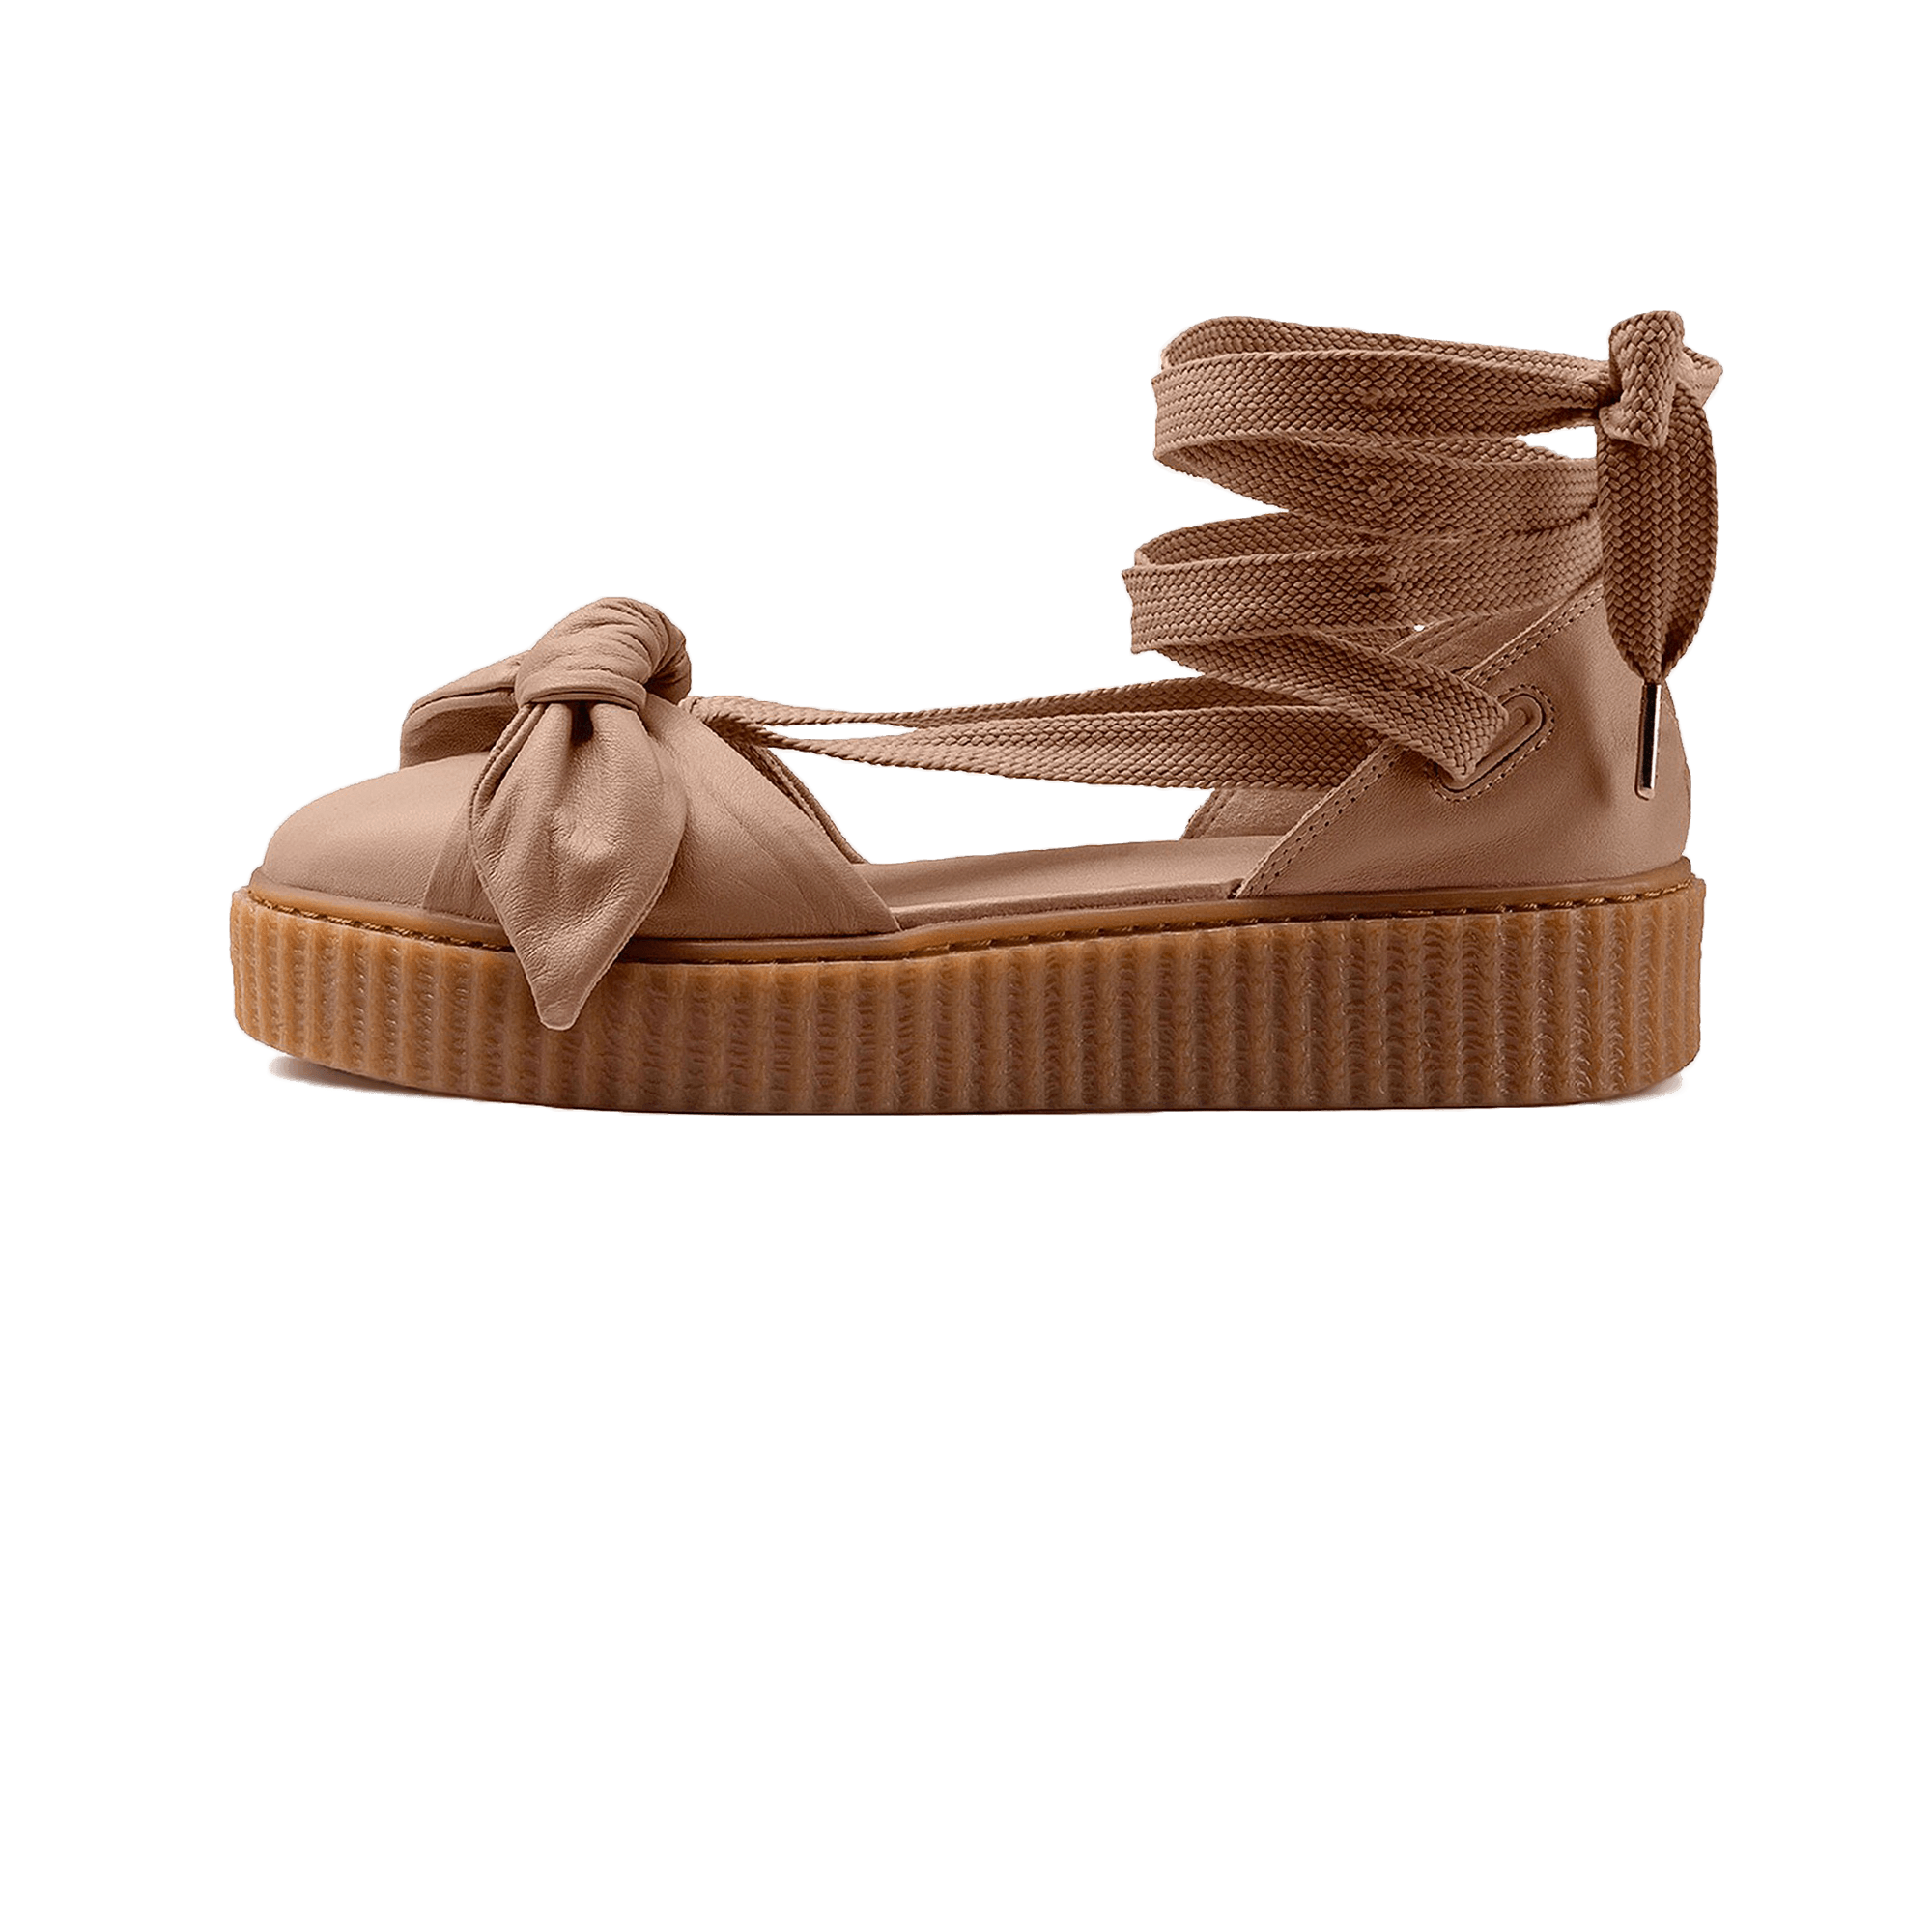 acbad4e5a1d Puma Fenty by Rihanna Bow Creeper Sandal brown gum - Woman ...